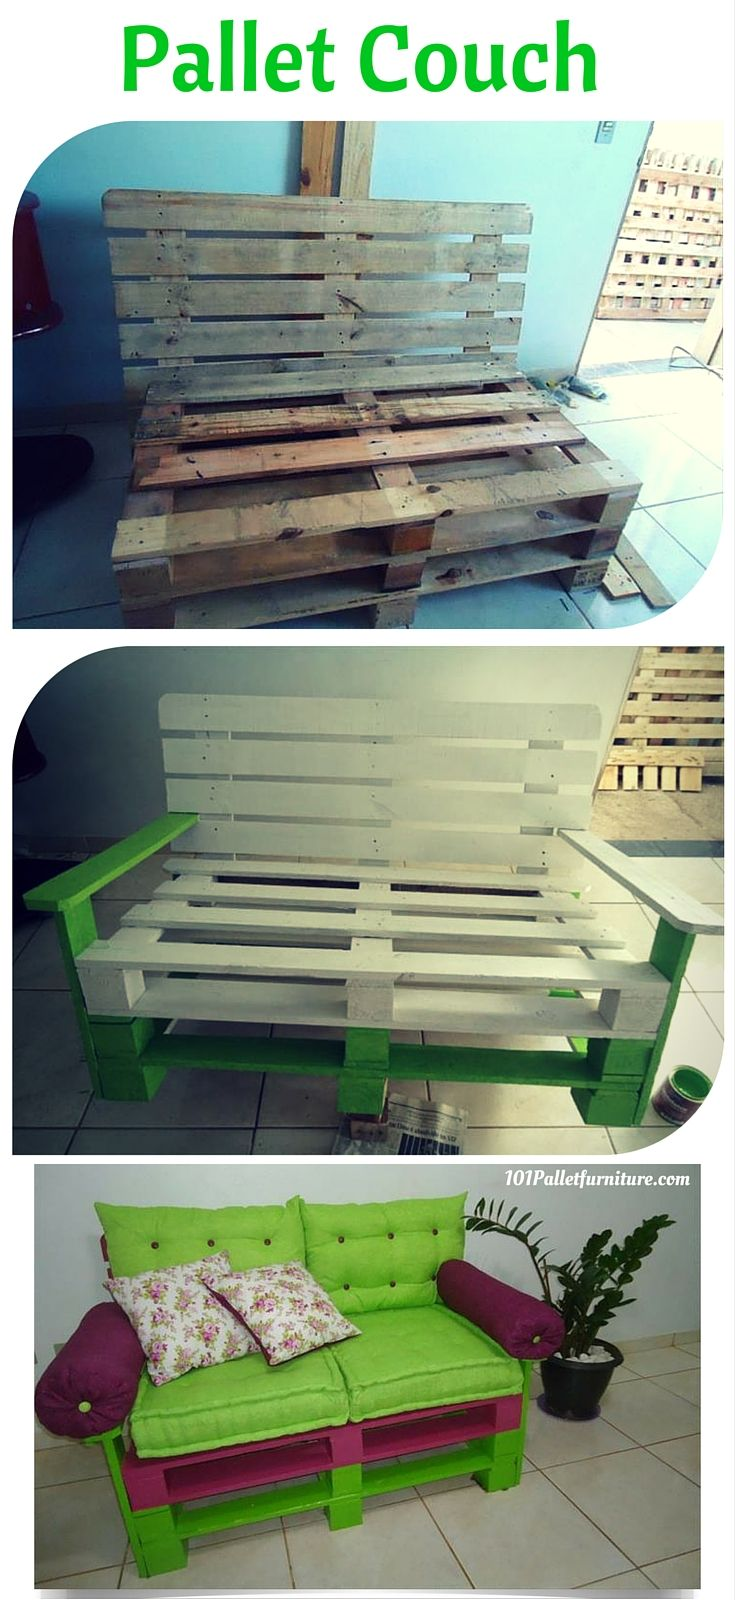 How to Make Pallet Couch? Simple ways to turn #pallets into furniture - 101 Pallet Furniture